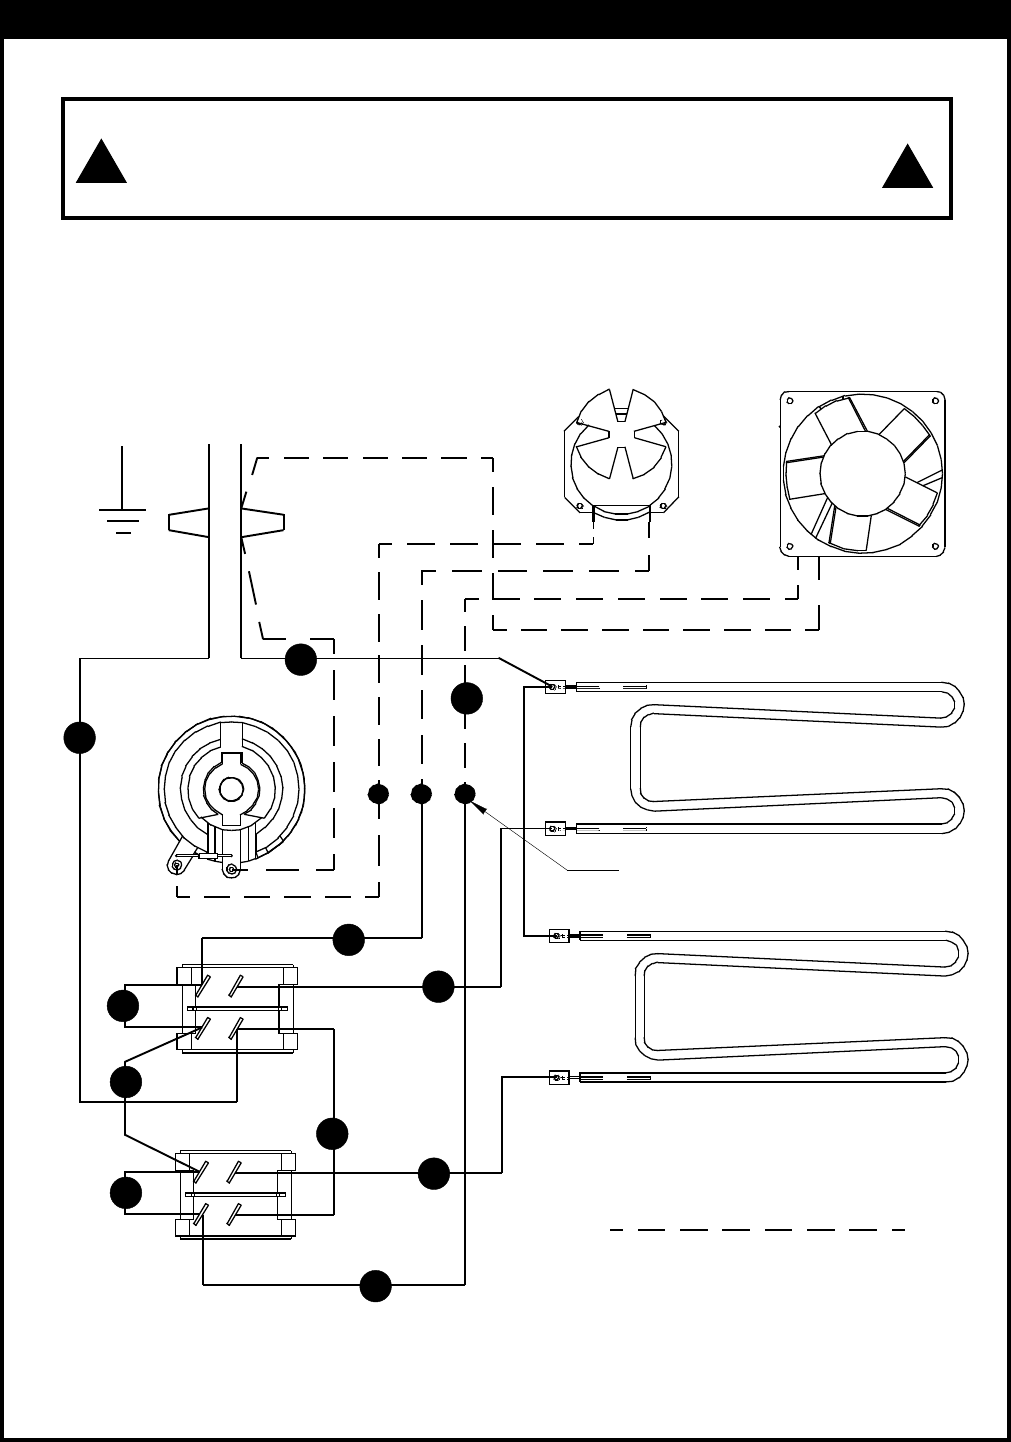 Apw Wyott Wiring Diagrams Download Wiring Diagrams - Apw wyott steam table